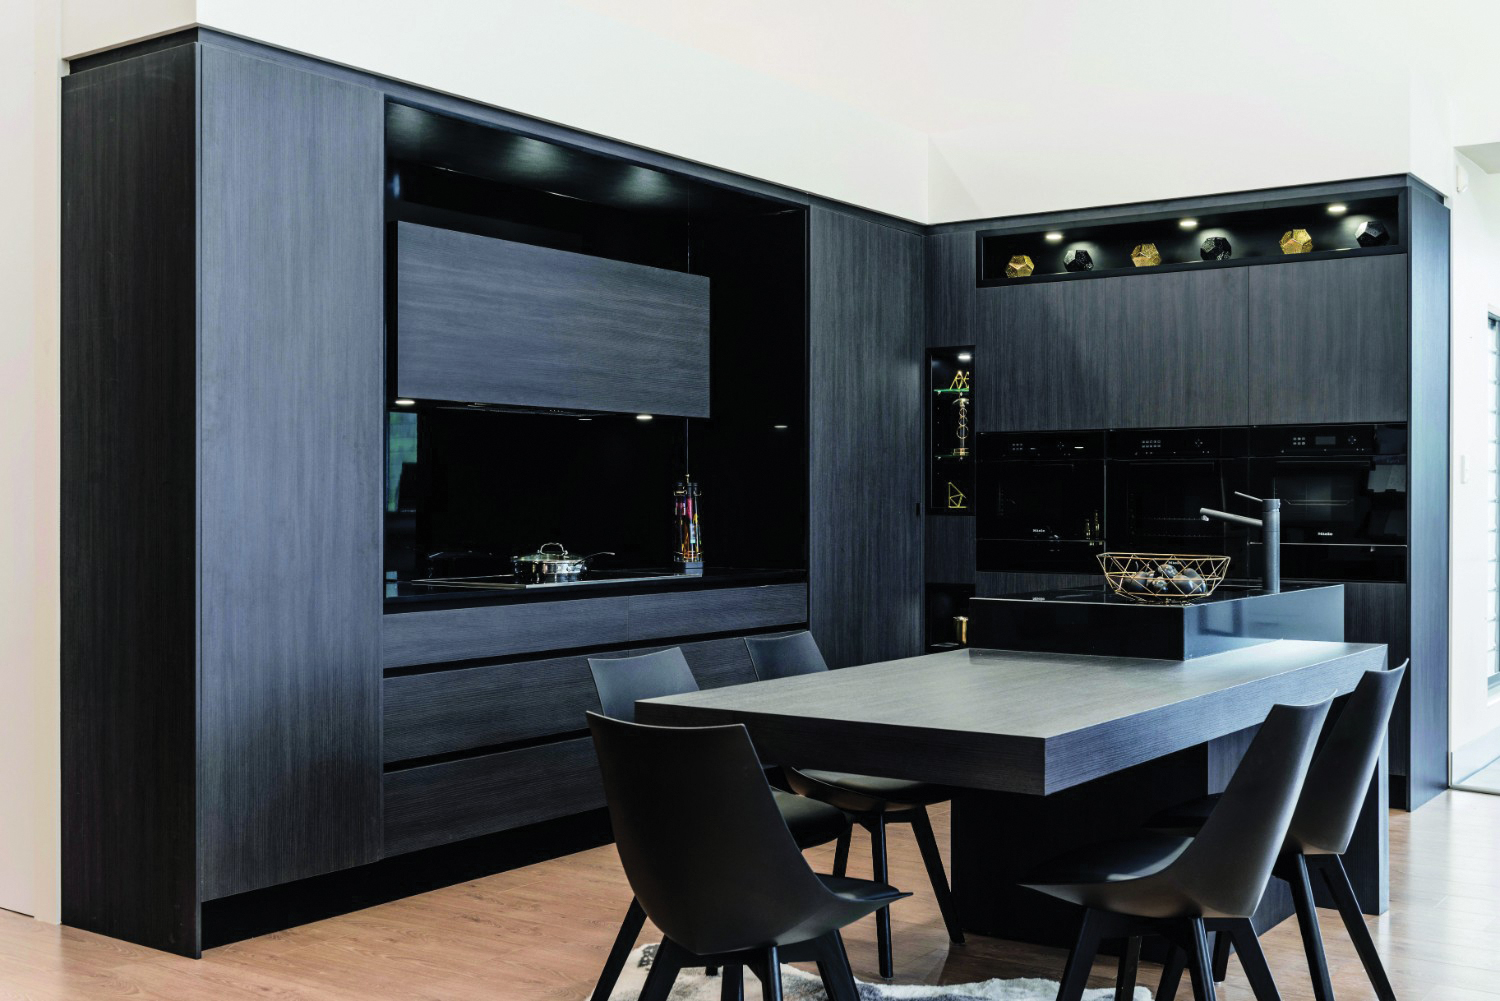 Glamour meets style: a tale of two kitchens